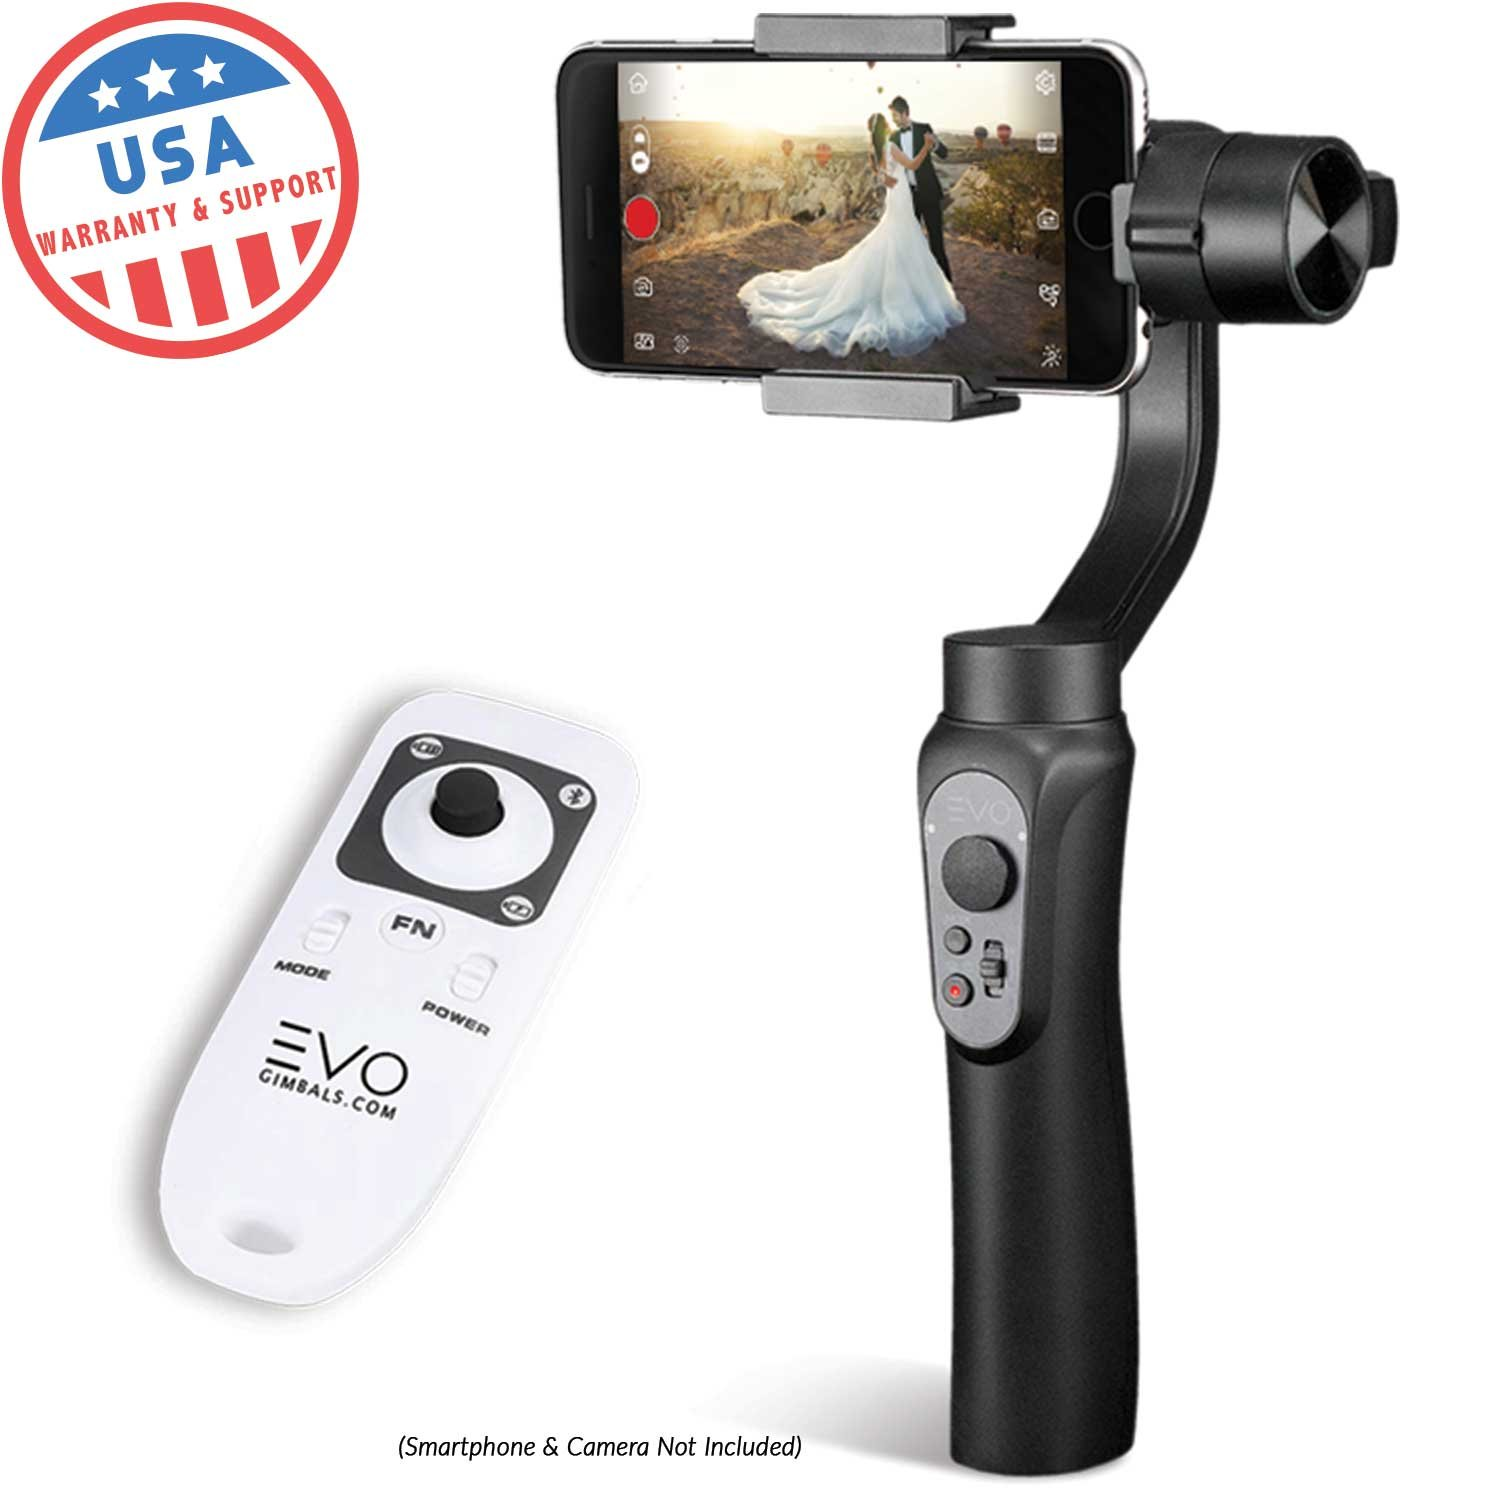 EVO Shift Camera Stabilizer - Handheld Gimbal for iPhone & Android Smartphones | Black | 1 Year US Warranty | Bundle Includes: EVO Shift Gimbal + EVO Wireless Remote (Gen1)